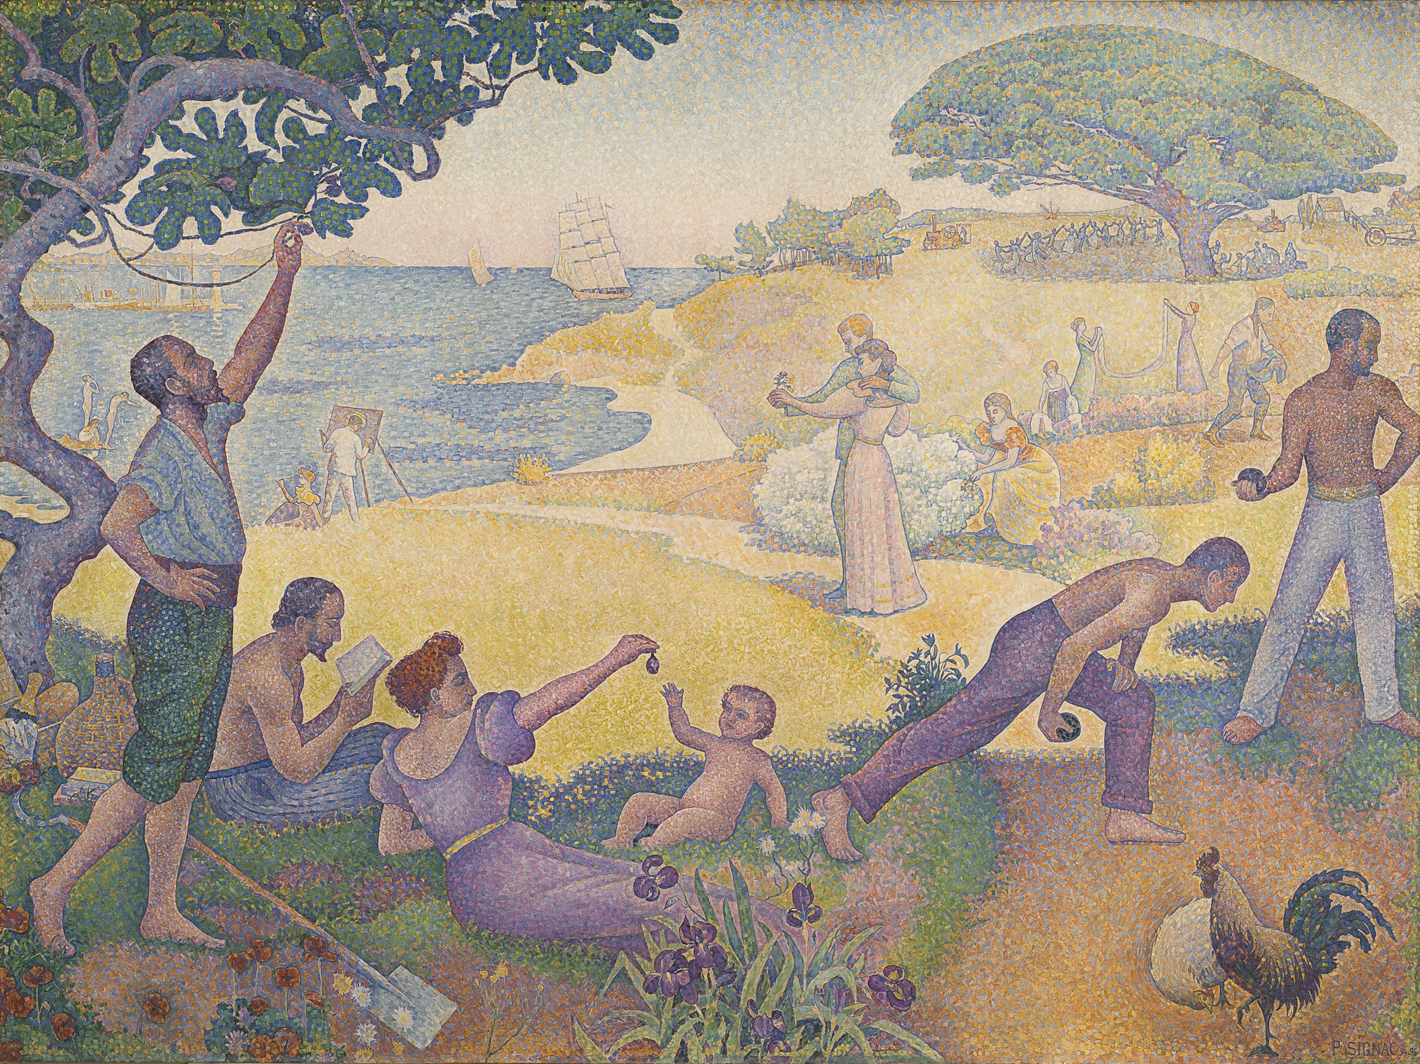 Paul Signac,  In the Time of Harmony. The Golden Age is not in the Past, it is in the Future , 1893-95, Mairie de Montreuil, France.